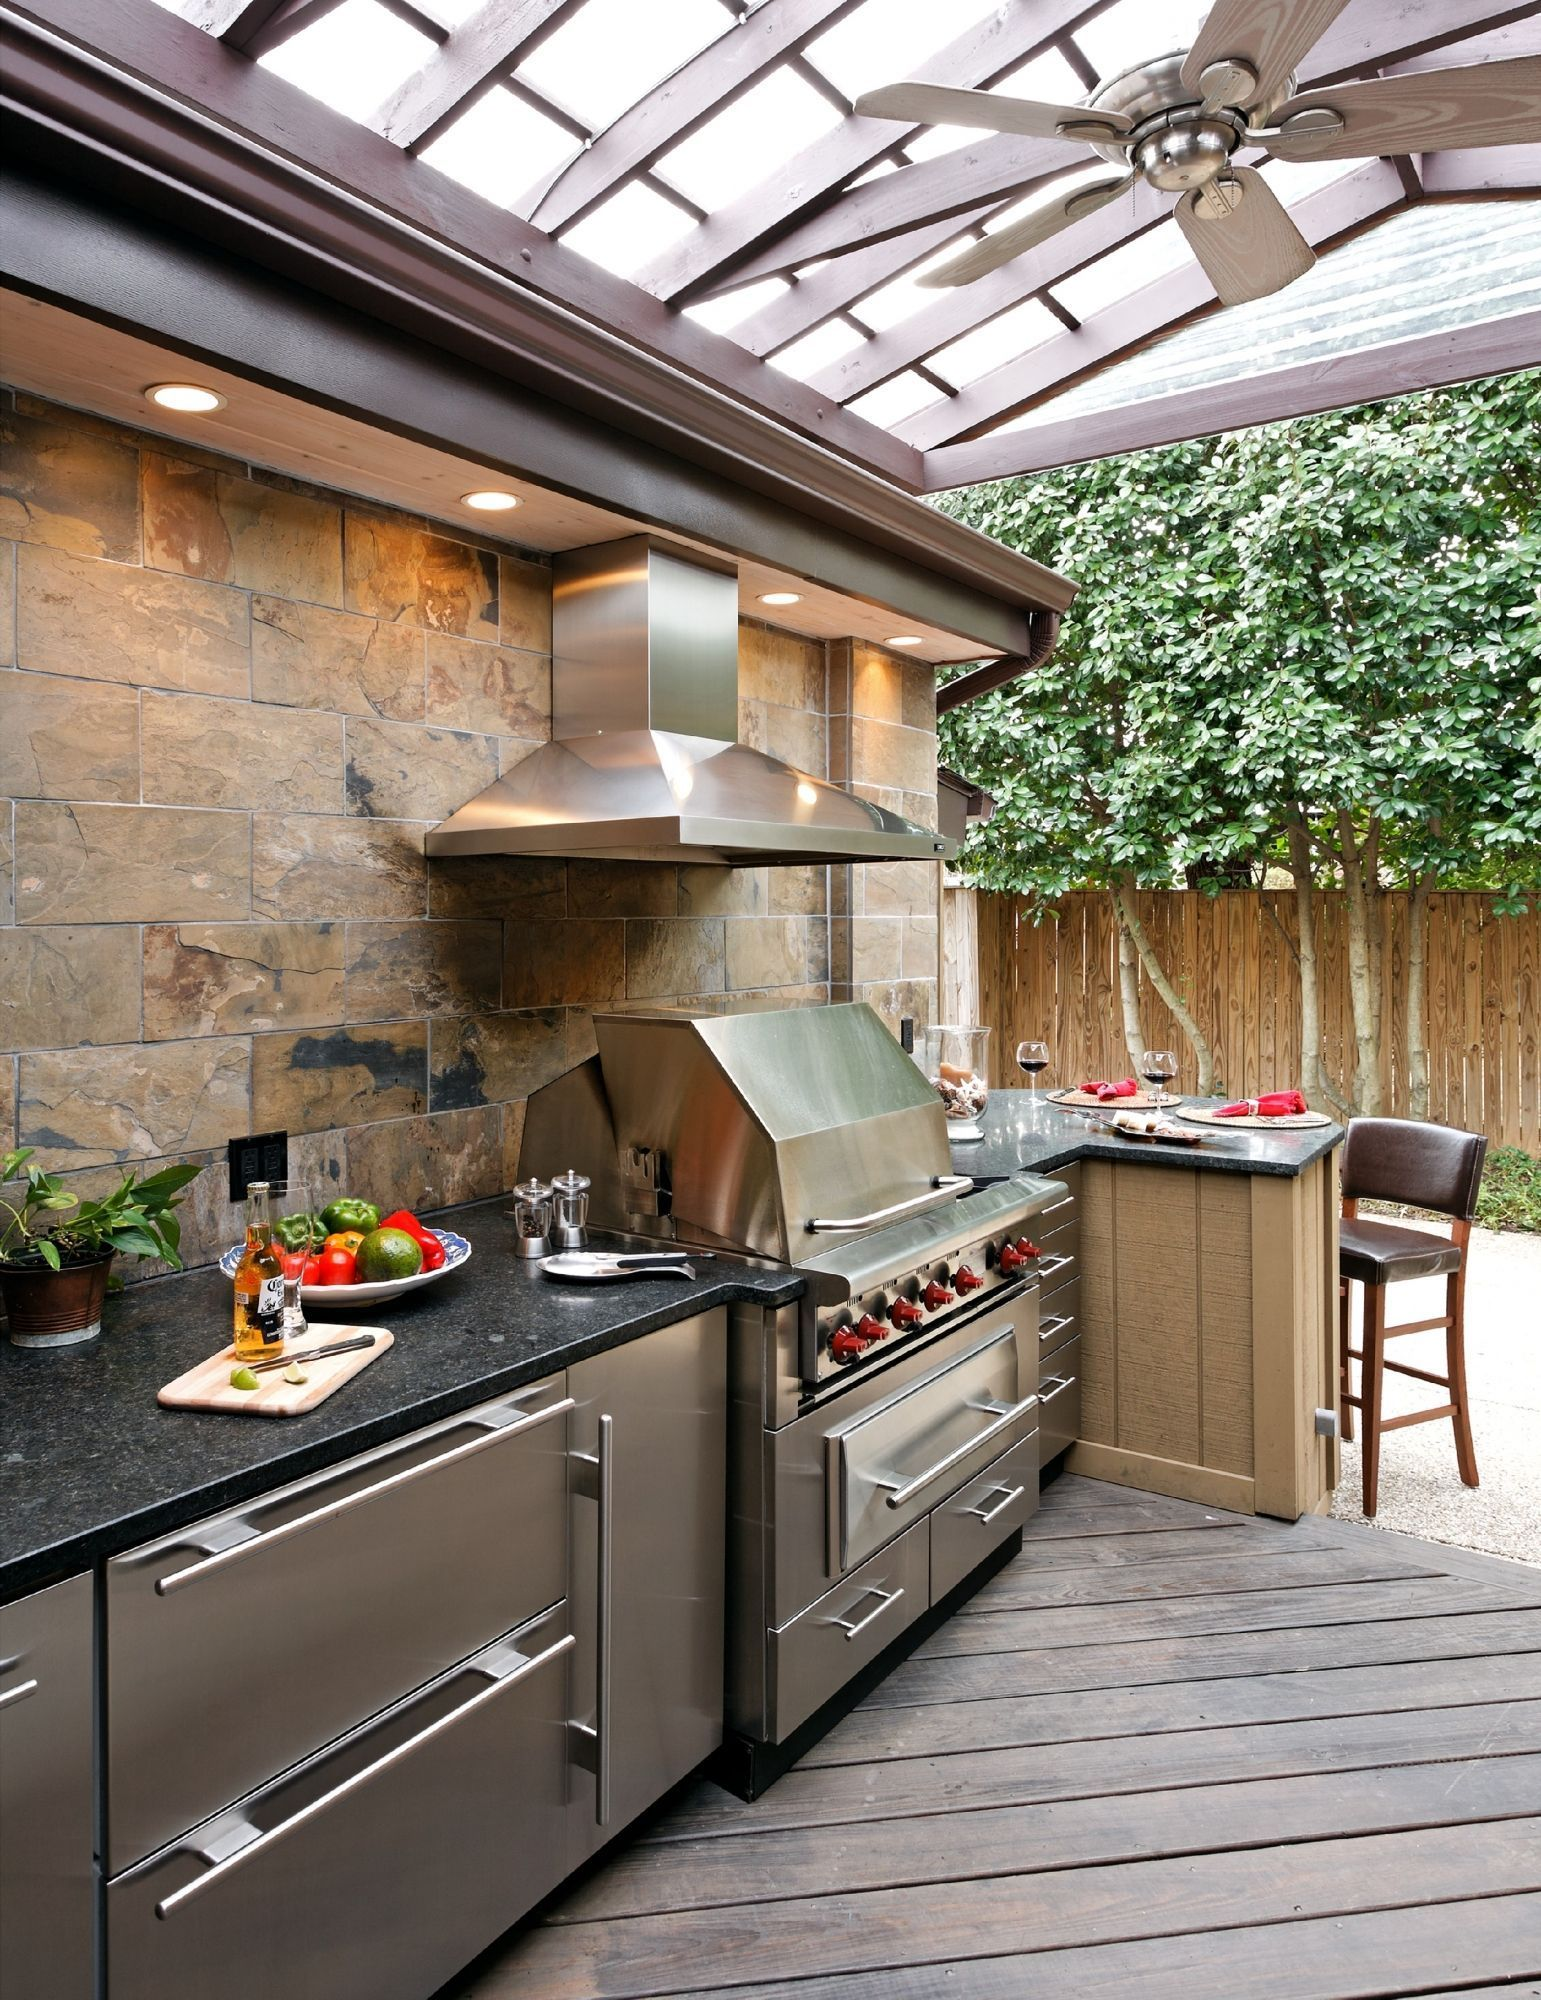 10 Outdoor Kitchen Ideas And Design On A Budget To Experience A Fun Cooking Outdoor Kitchen Outdoor Kitchen Design Small Space Kitchen